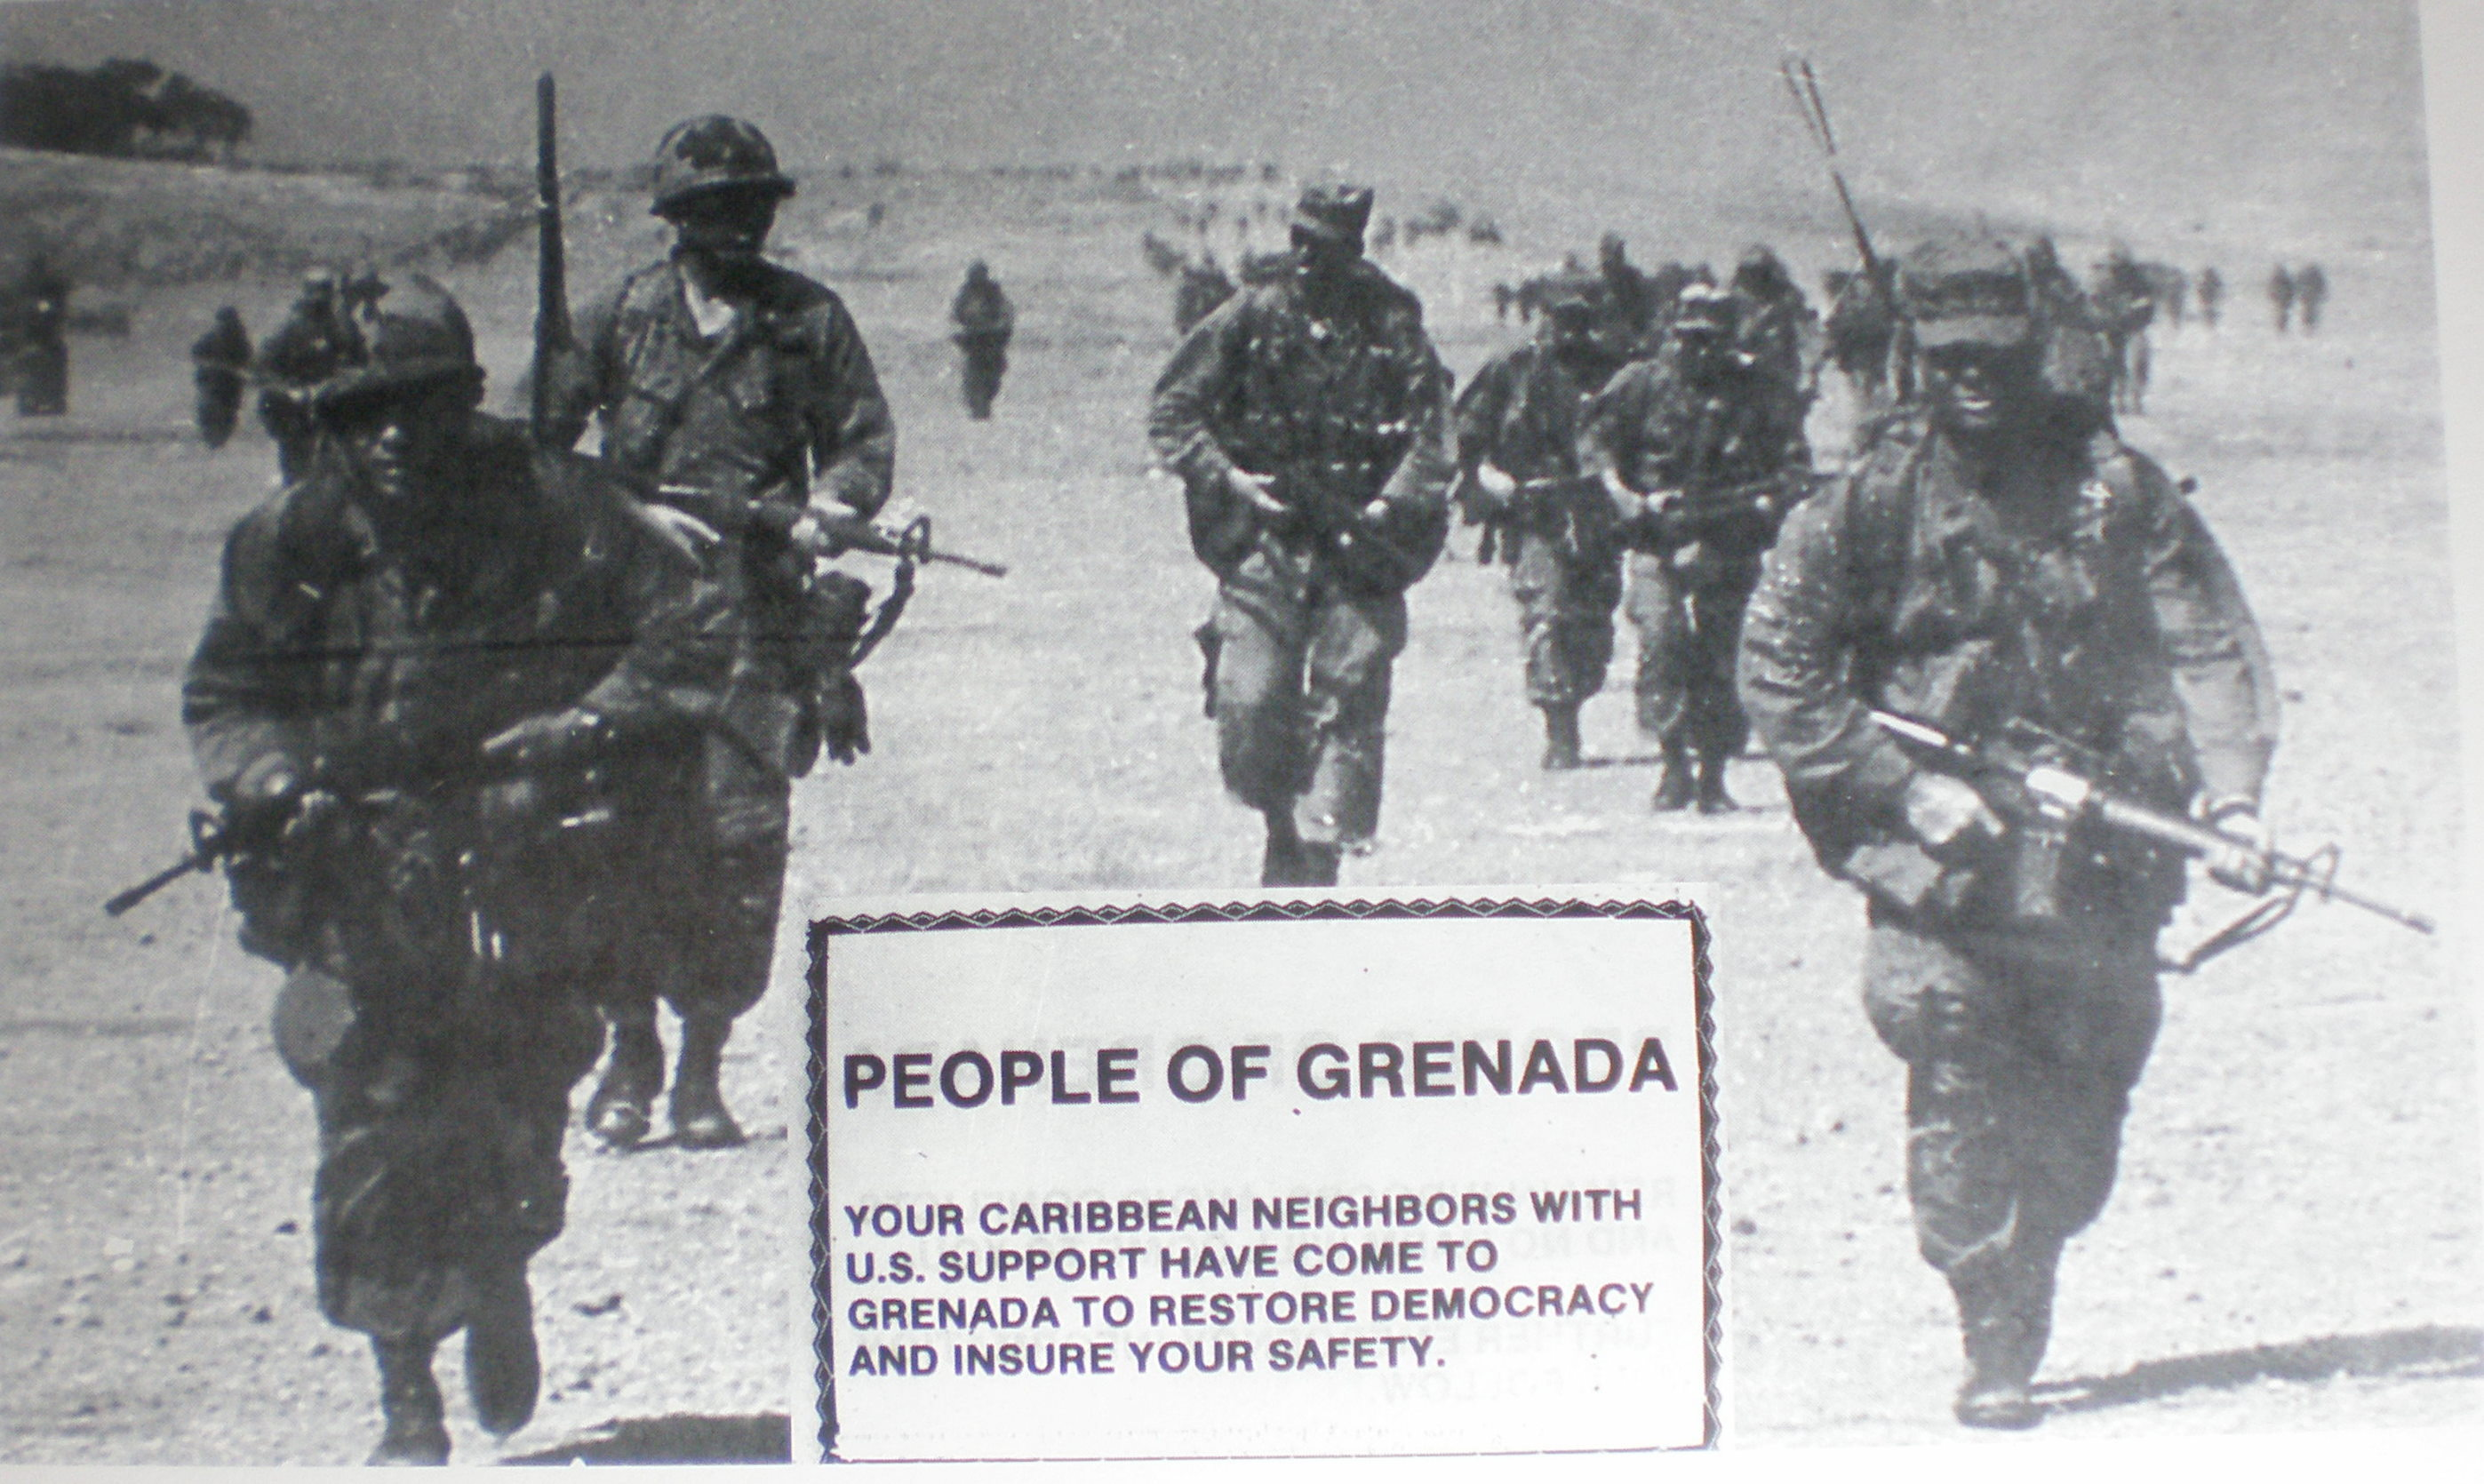 Leaflet air-dropped during the US invasion of Grenada